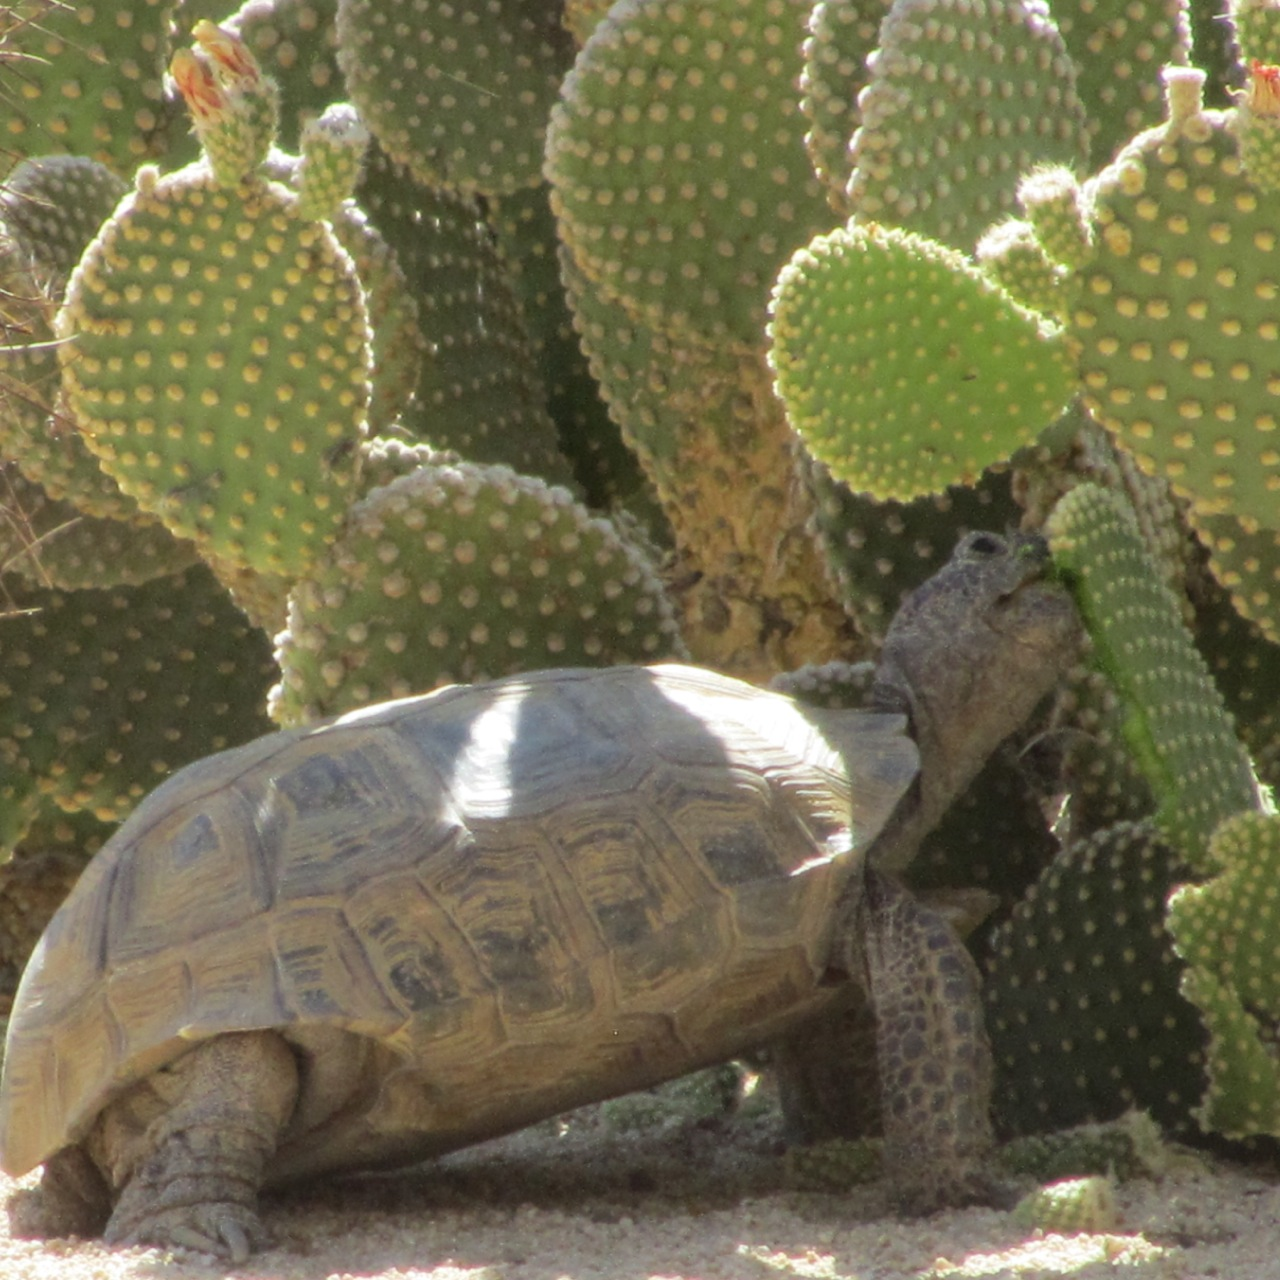 tortoise_eating_cactus_02.jpg